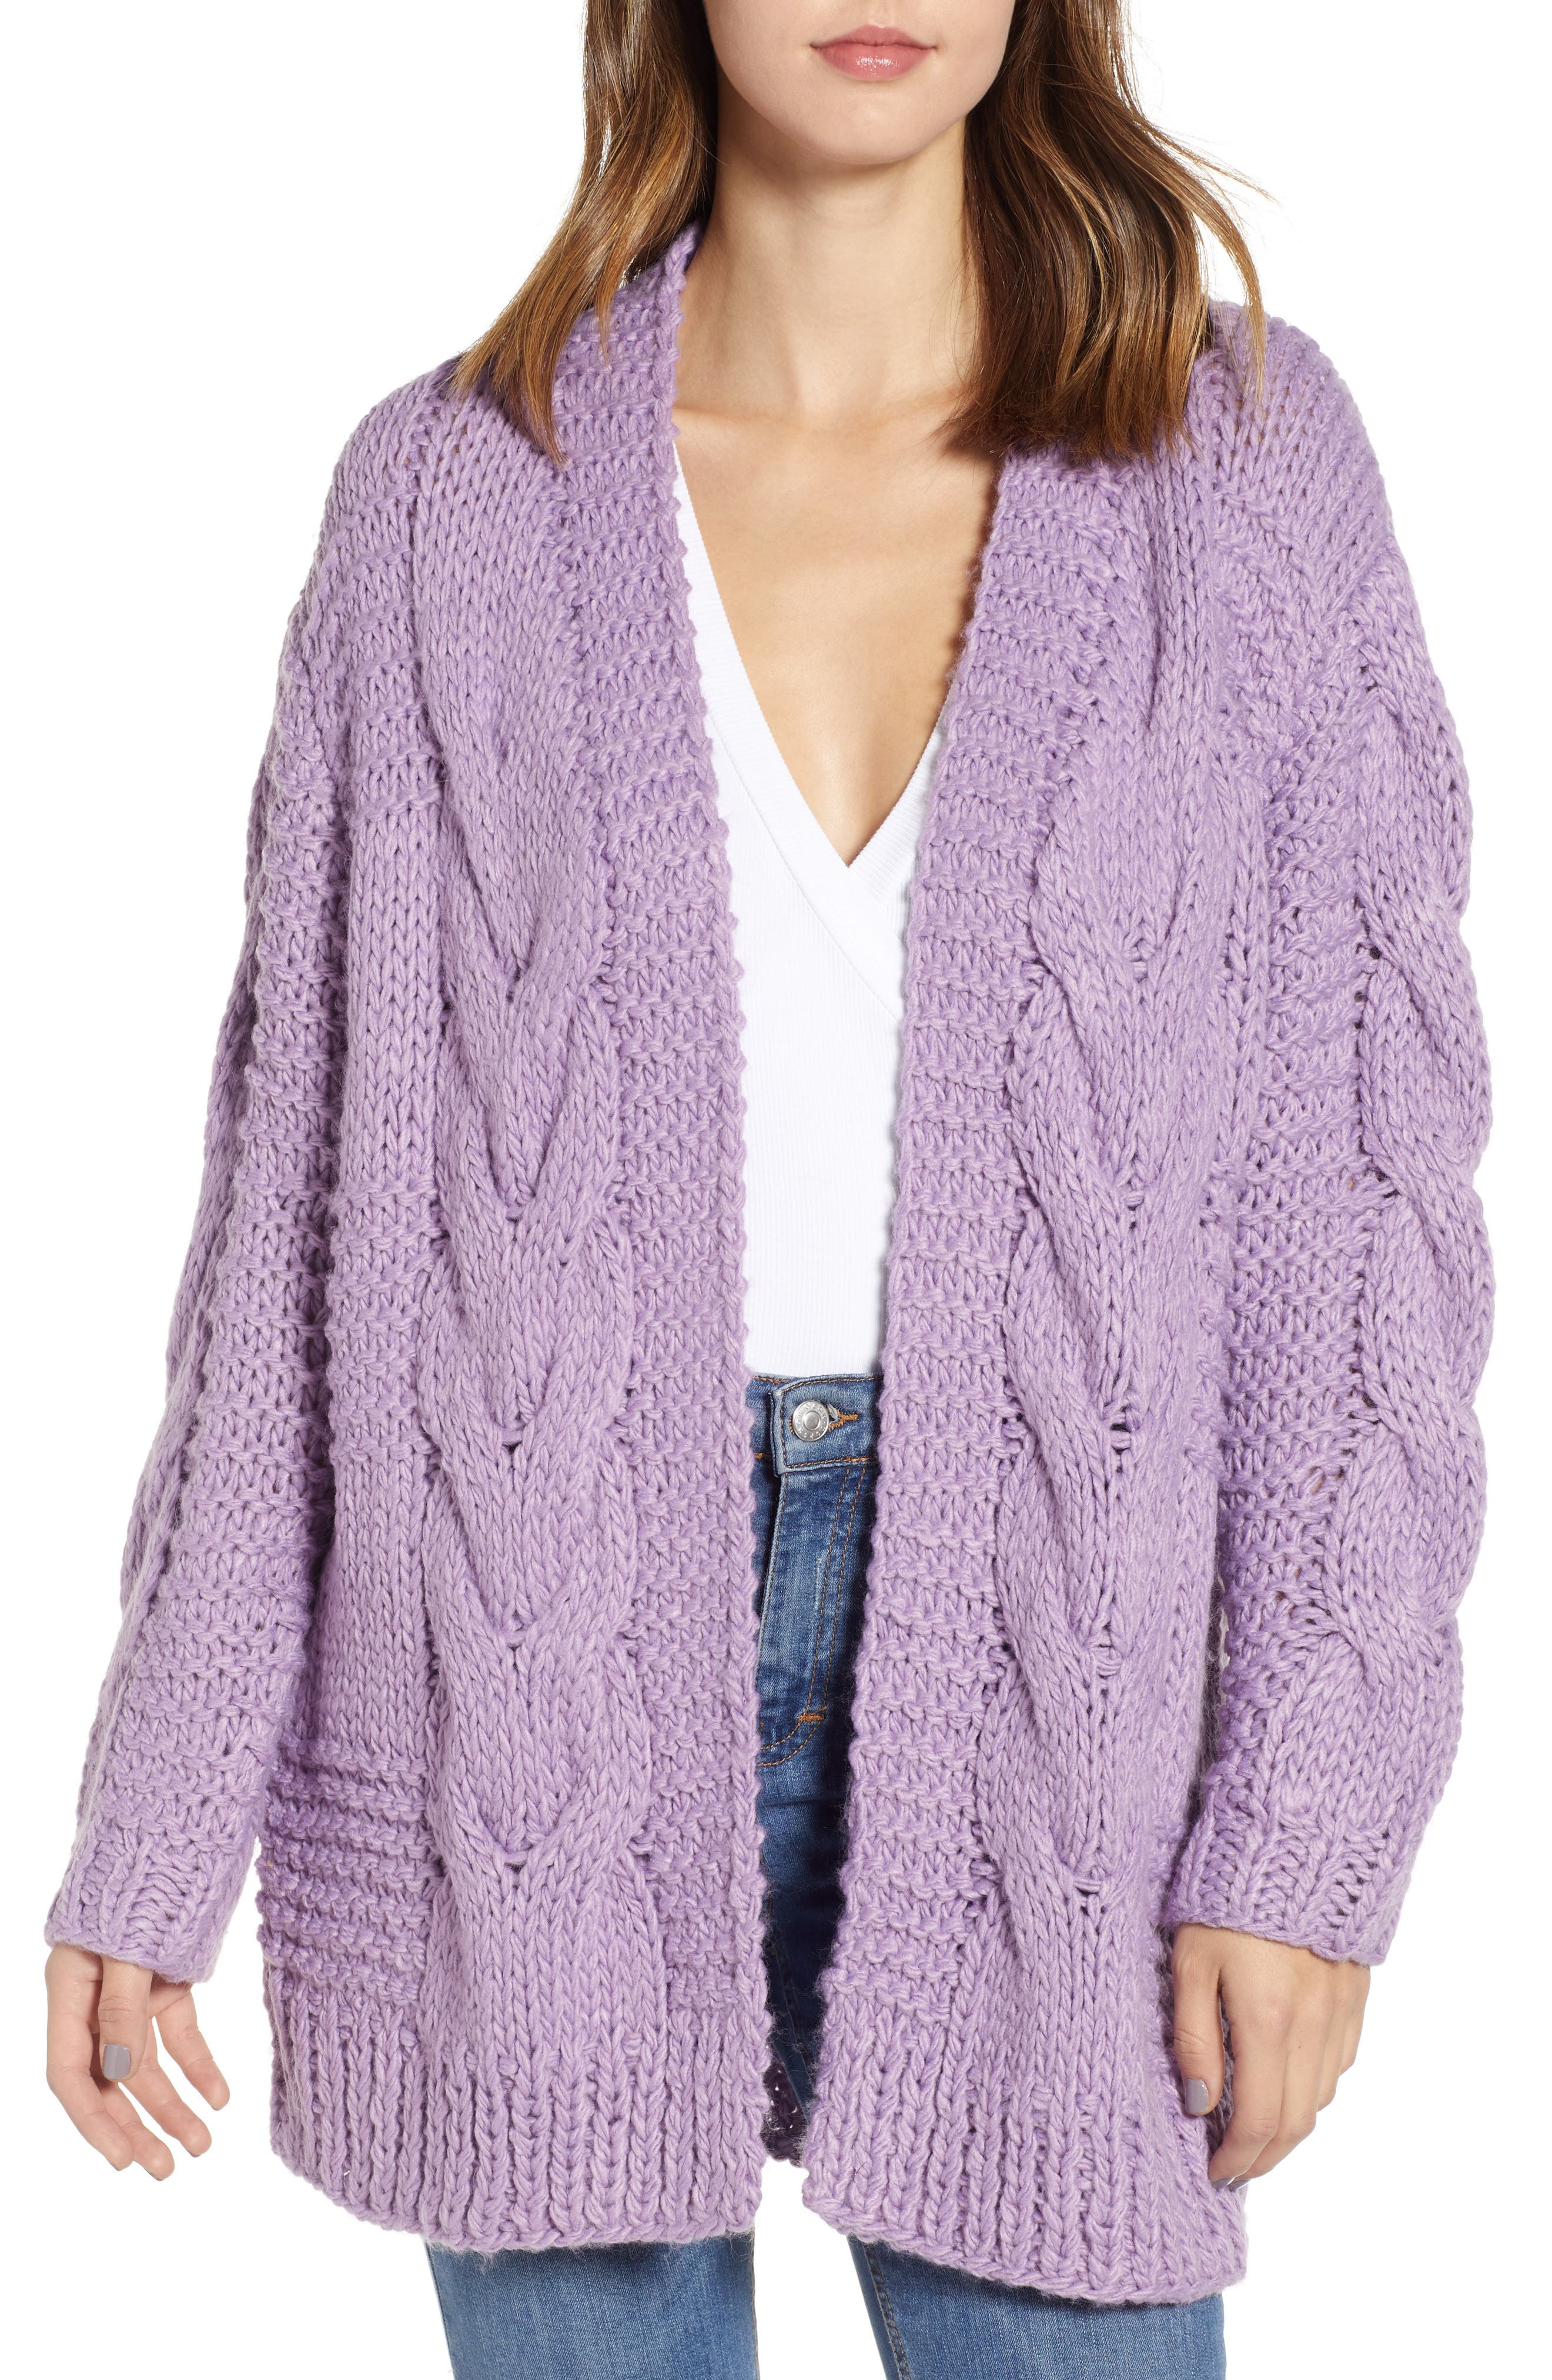 Cable Knit Oversized Cardigan,                             Main thumbnail 1, color,                             500